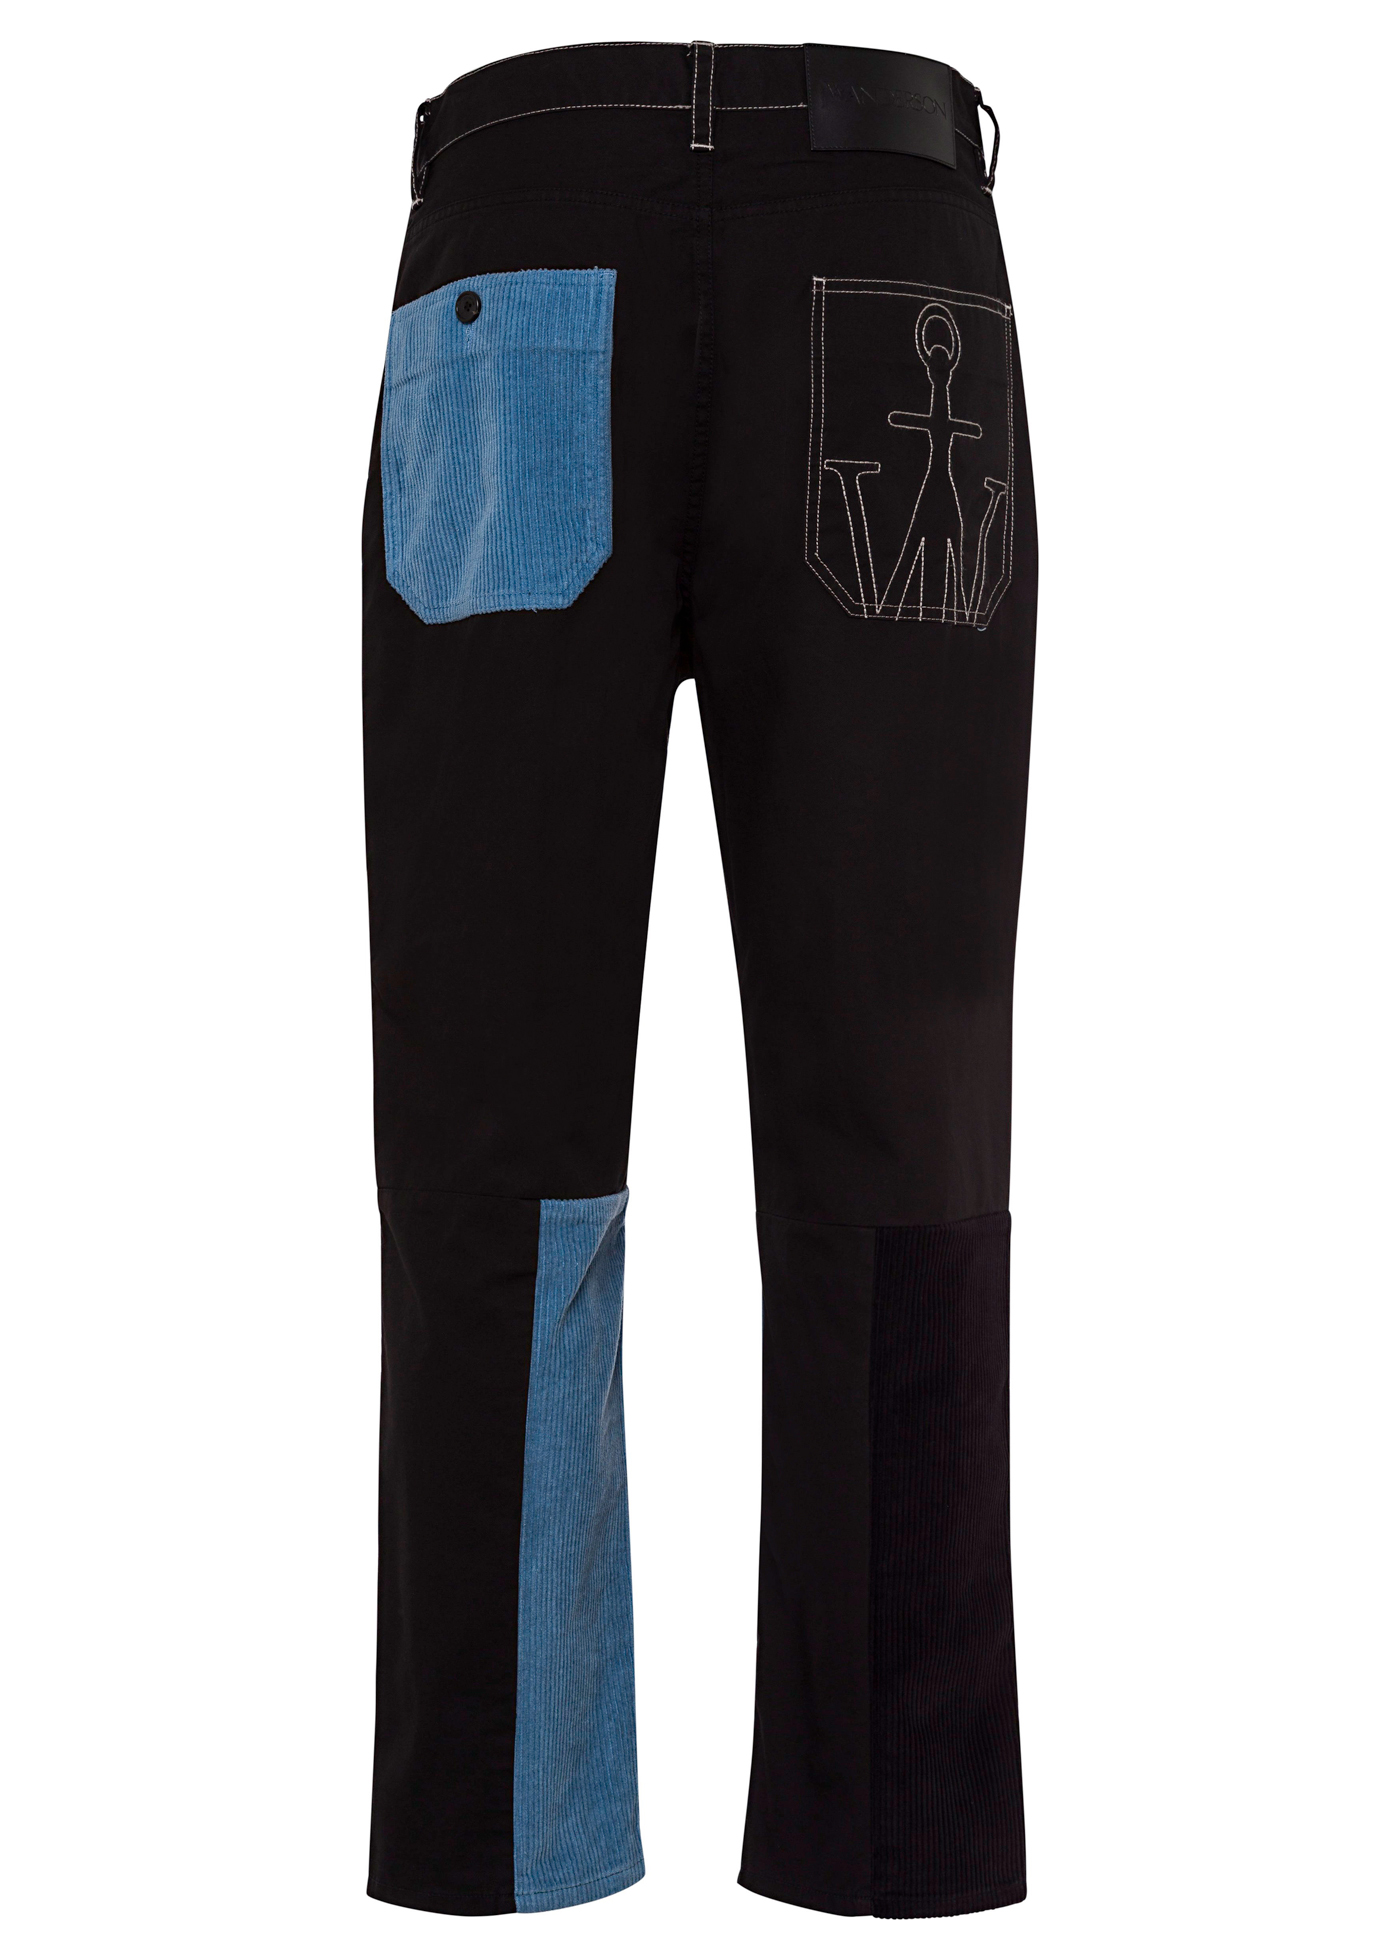 CROPPED PATCHWORK FATIGUE TROUSERS image number 1